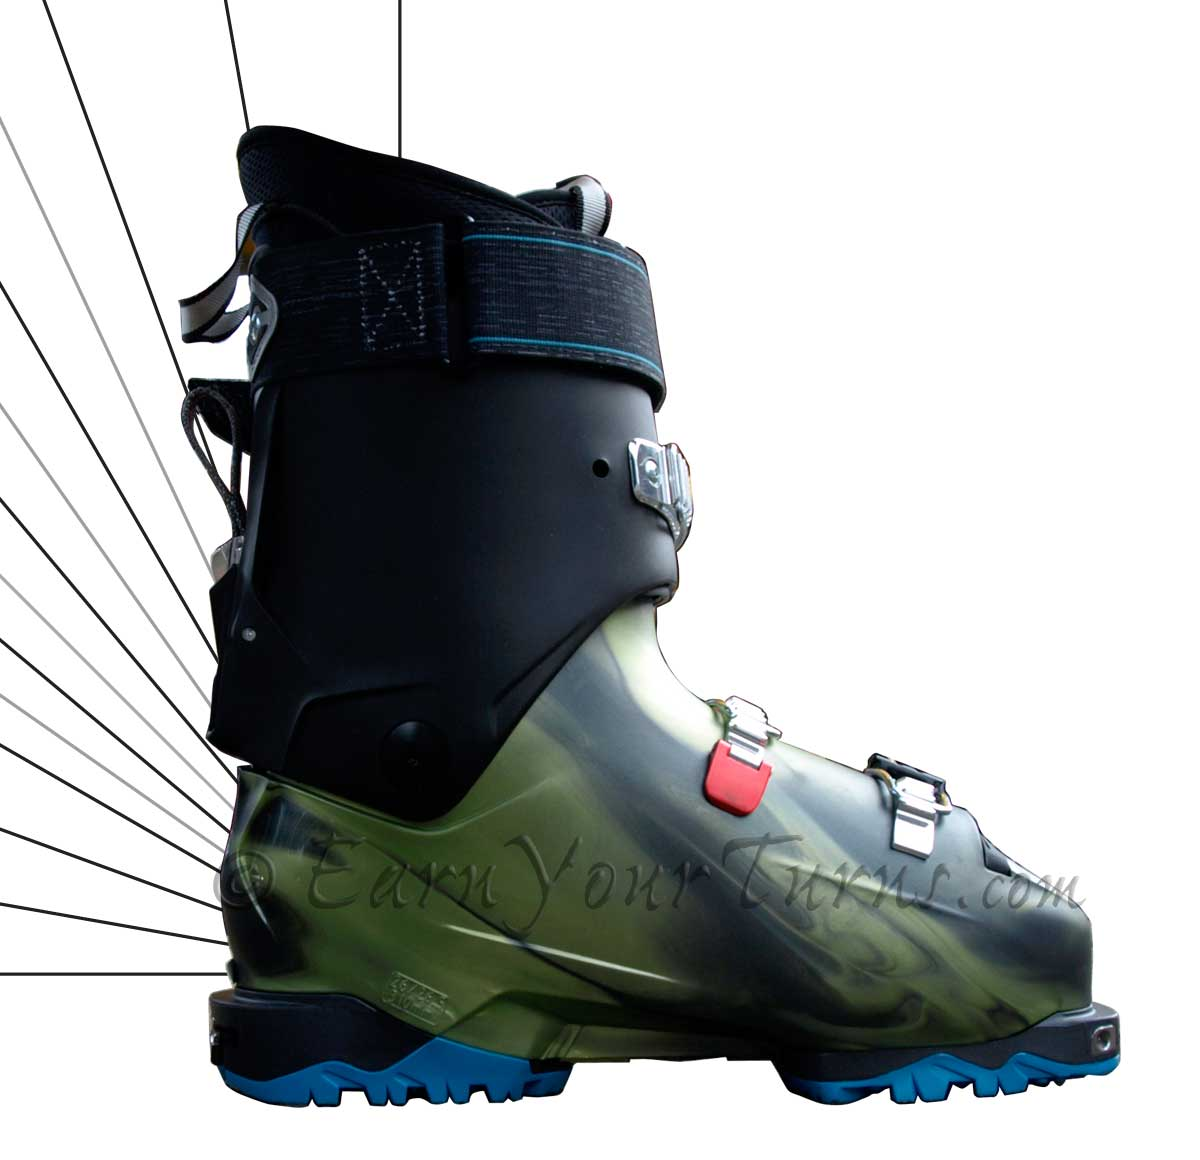 Backcountry Boot Review Tecnica S Cochise Earnyourturns